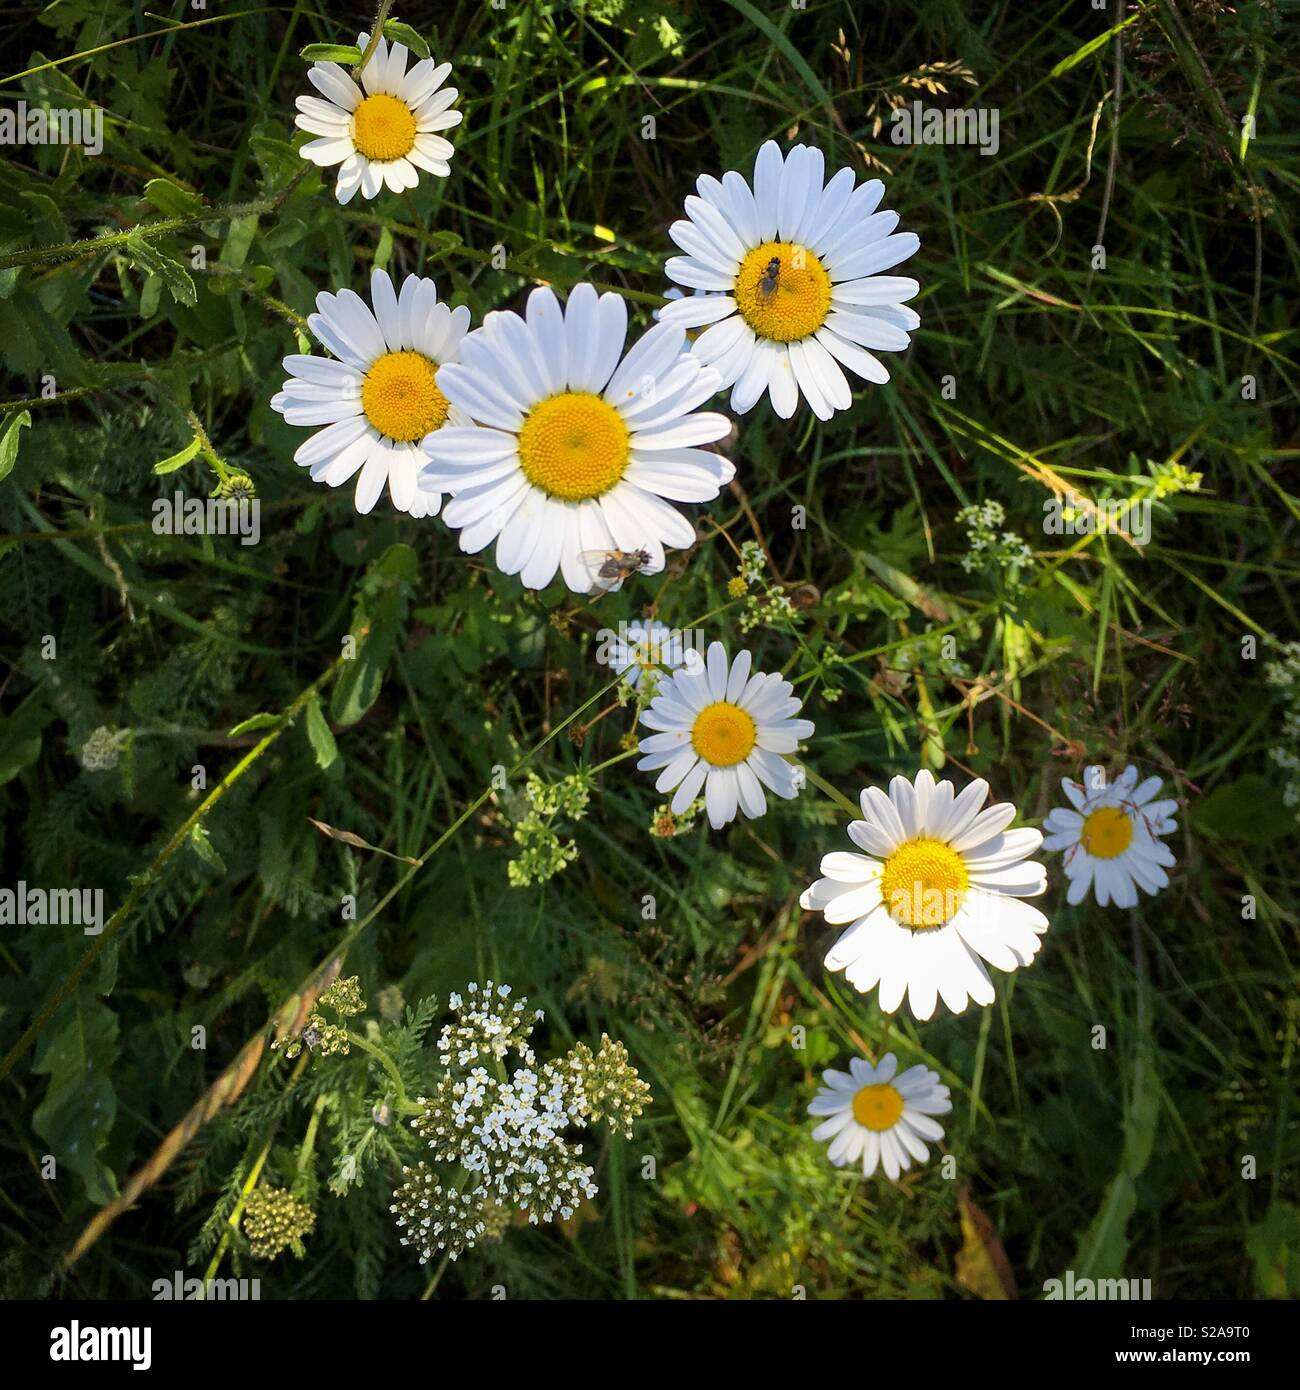 Summertime and it's colorful flowers somewhere in Dalarna, Sweden. Stock Photo